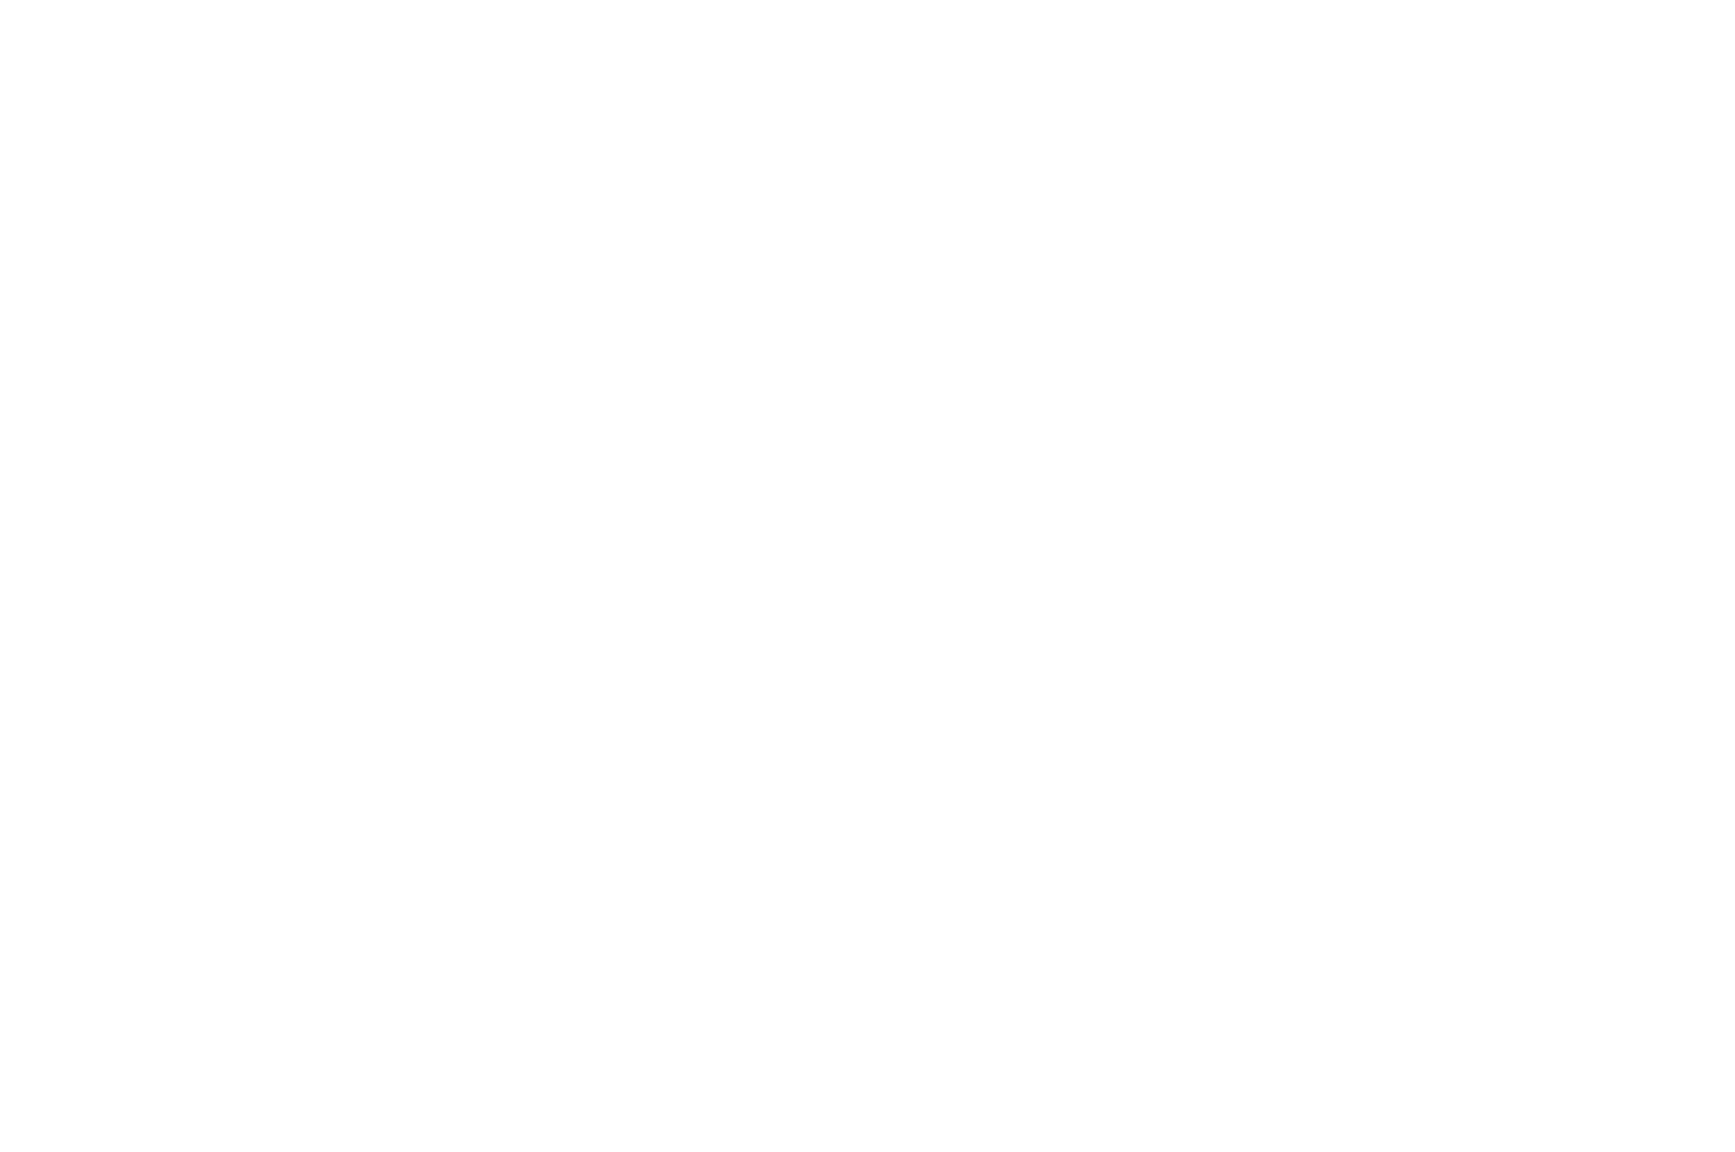 BEST COMEDY NOMINATION - AOF Festival Writers Awards